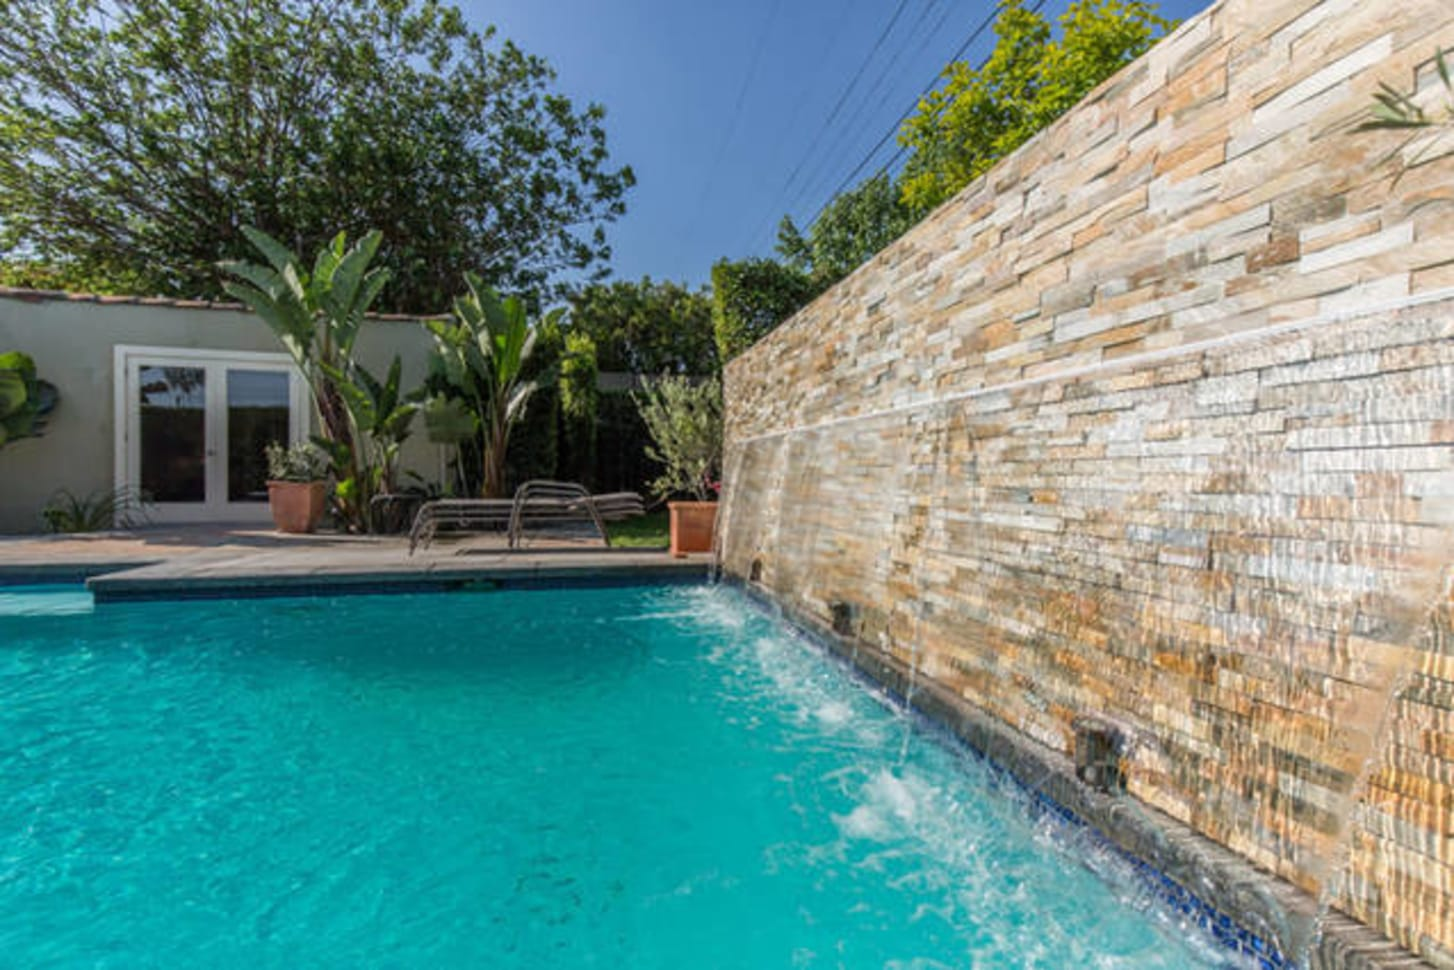 Guest homes for rent in los angeles - Guest Homes For Rent In Los Angeles 17